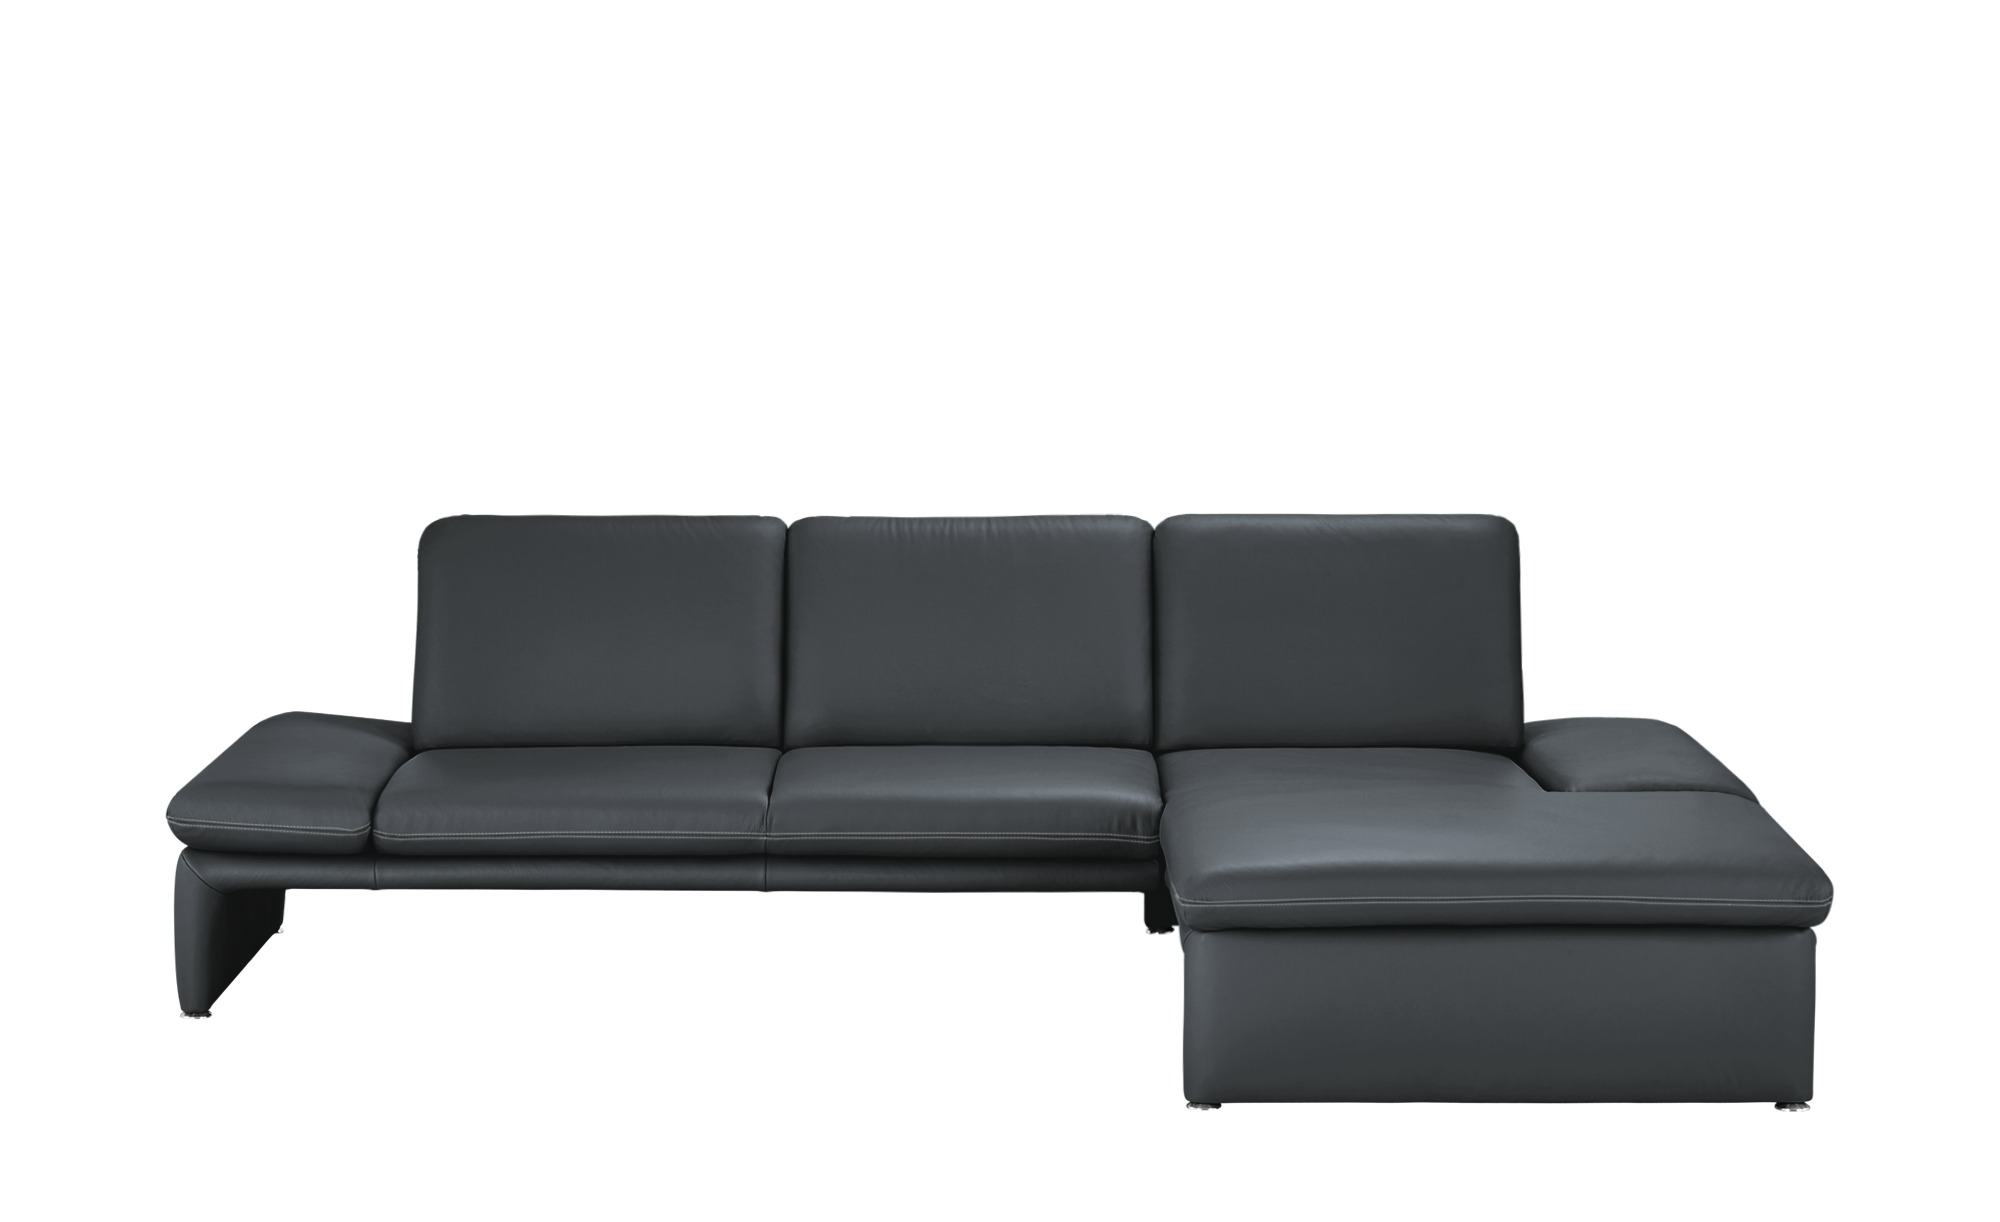 leder ecksofa harbour breite h he 85 cm grau online kaufen bei woonio. Black Bedroom Furniture Sets. Home Design Ideas